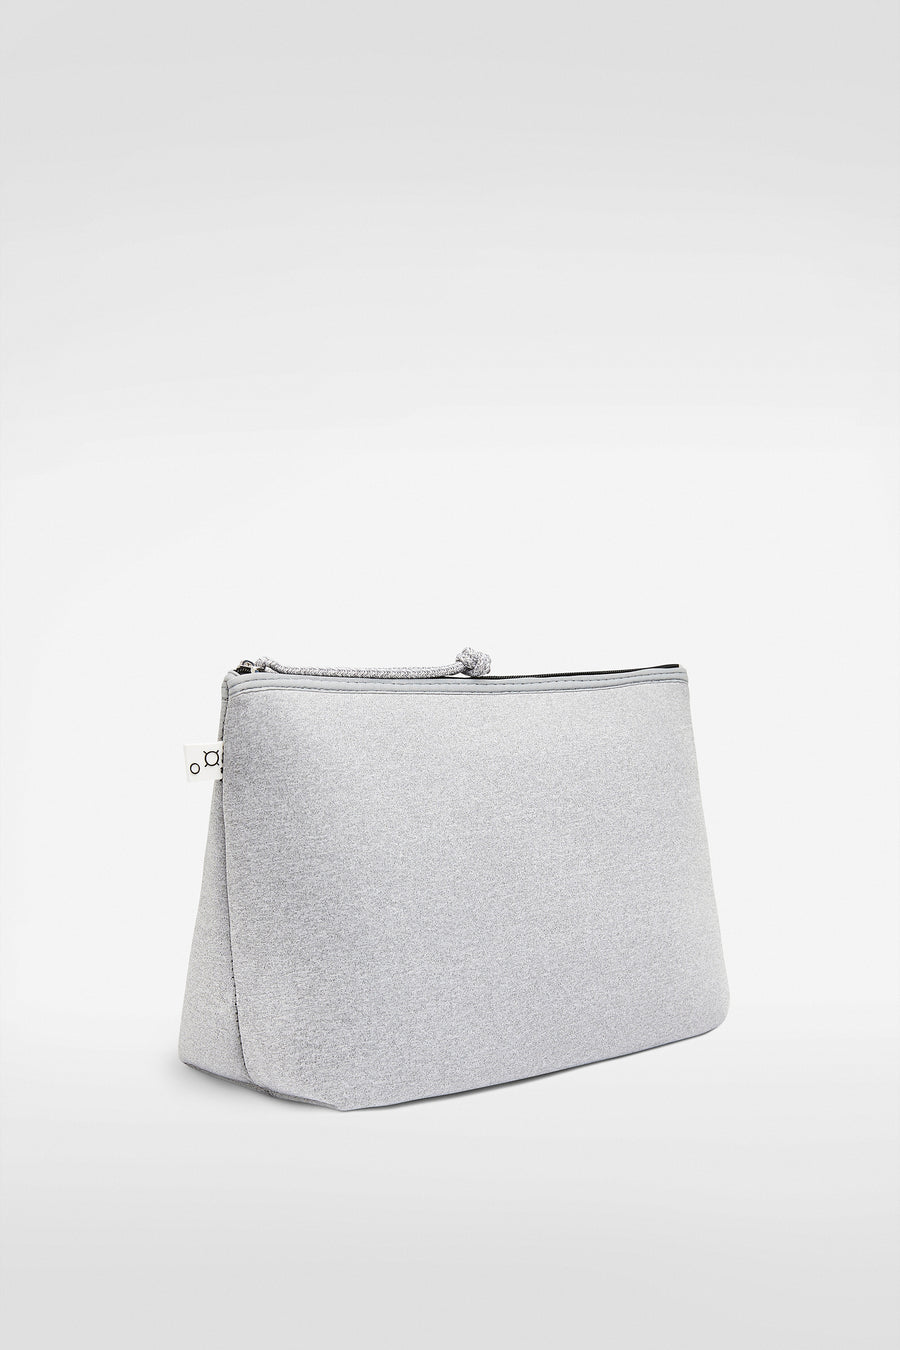 PIPER POUCH - GREY